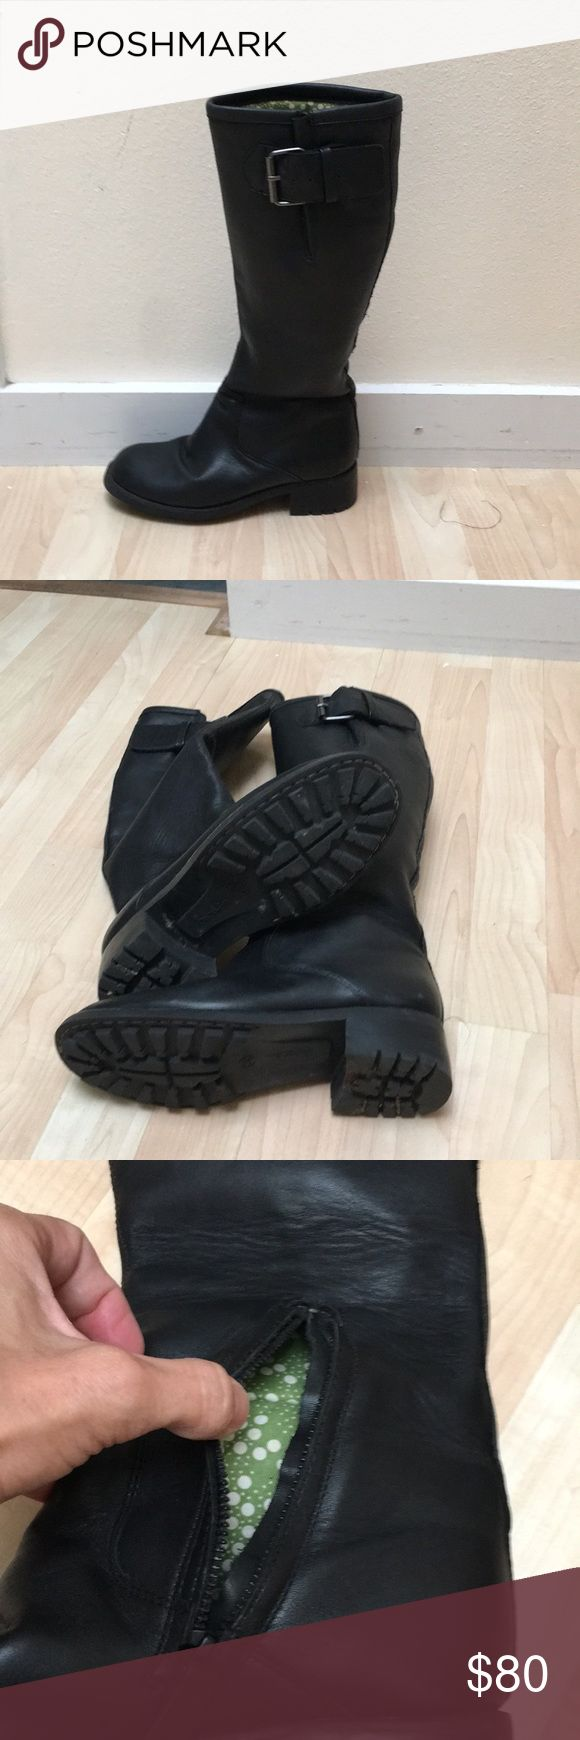 Women's Boden Black Boots Boden Black leather boots. Excellent condition.Size 38 or 8 Boden Shoes Heeled Boots